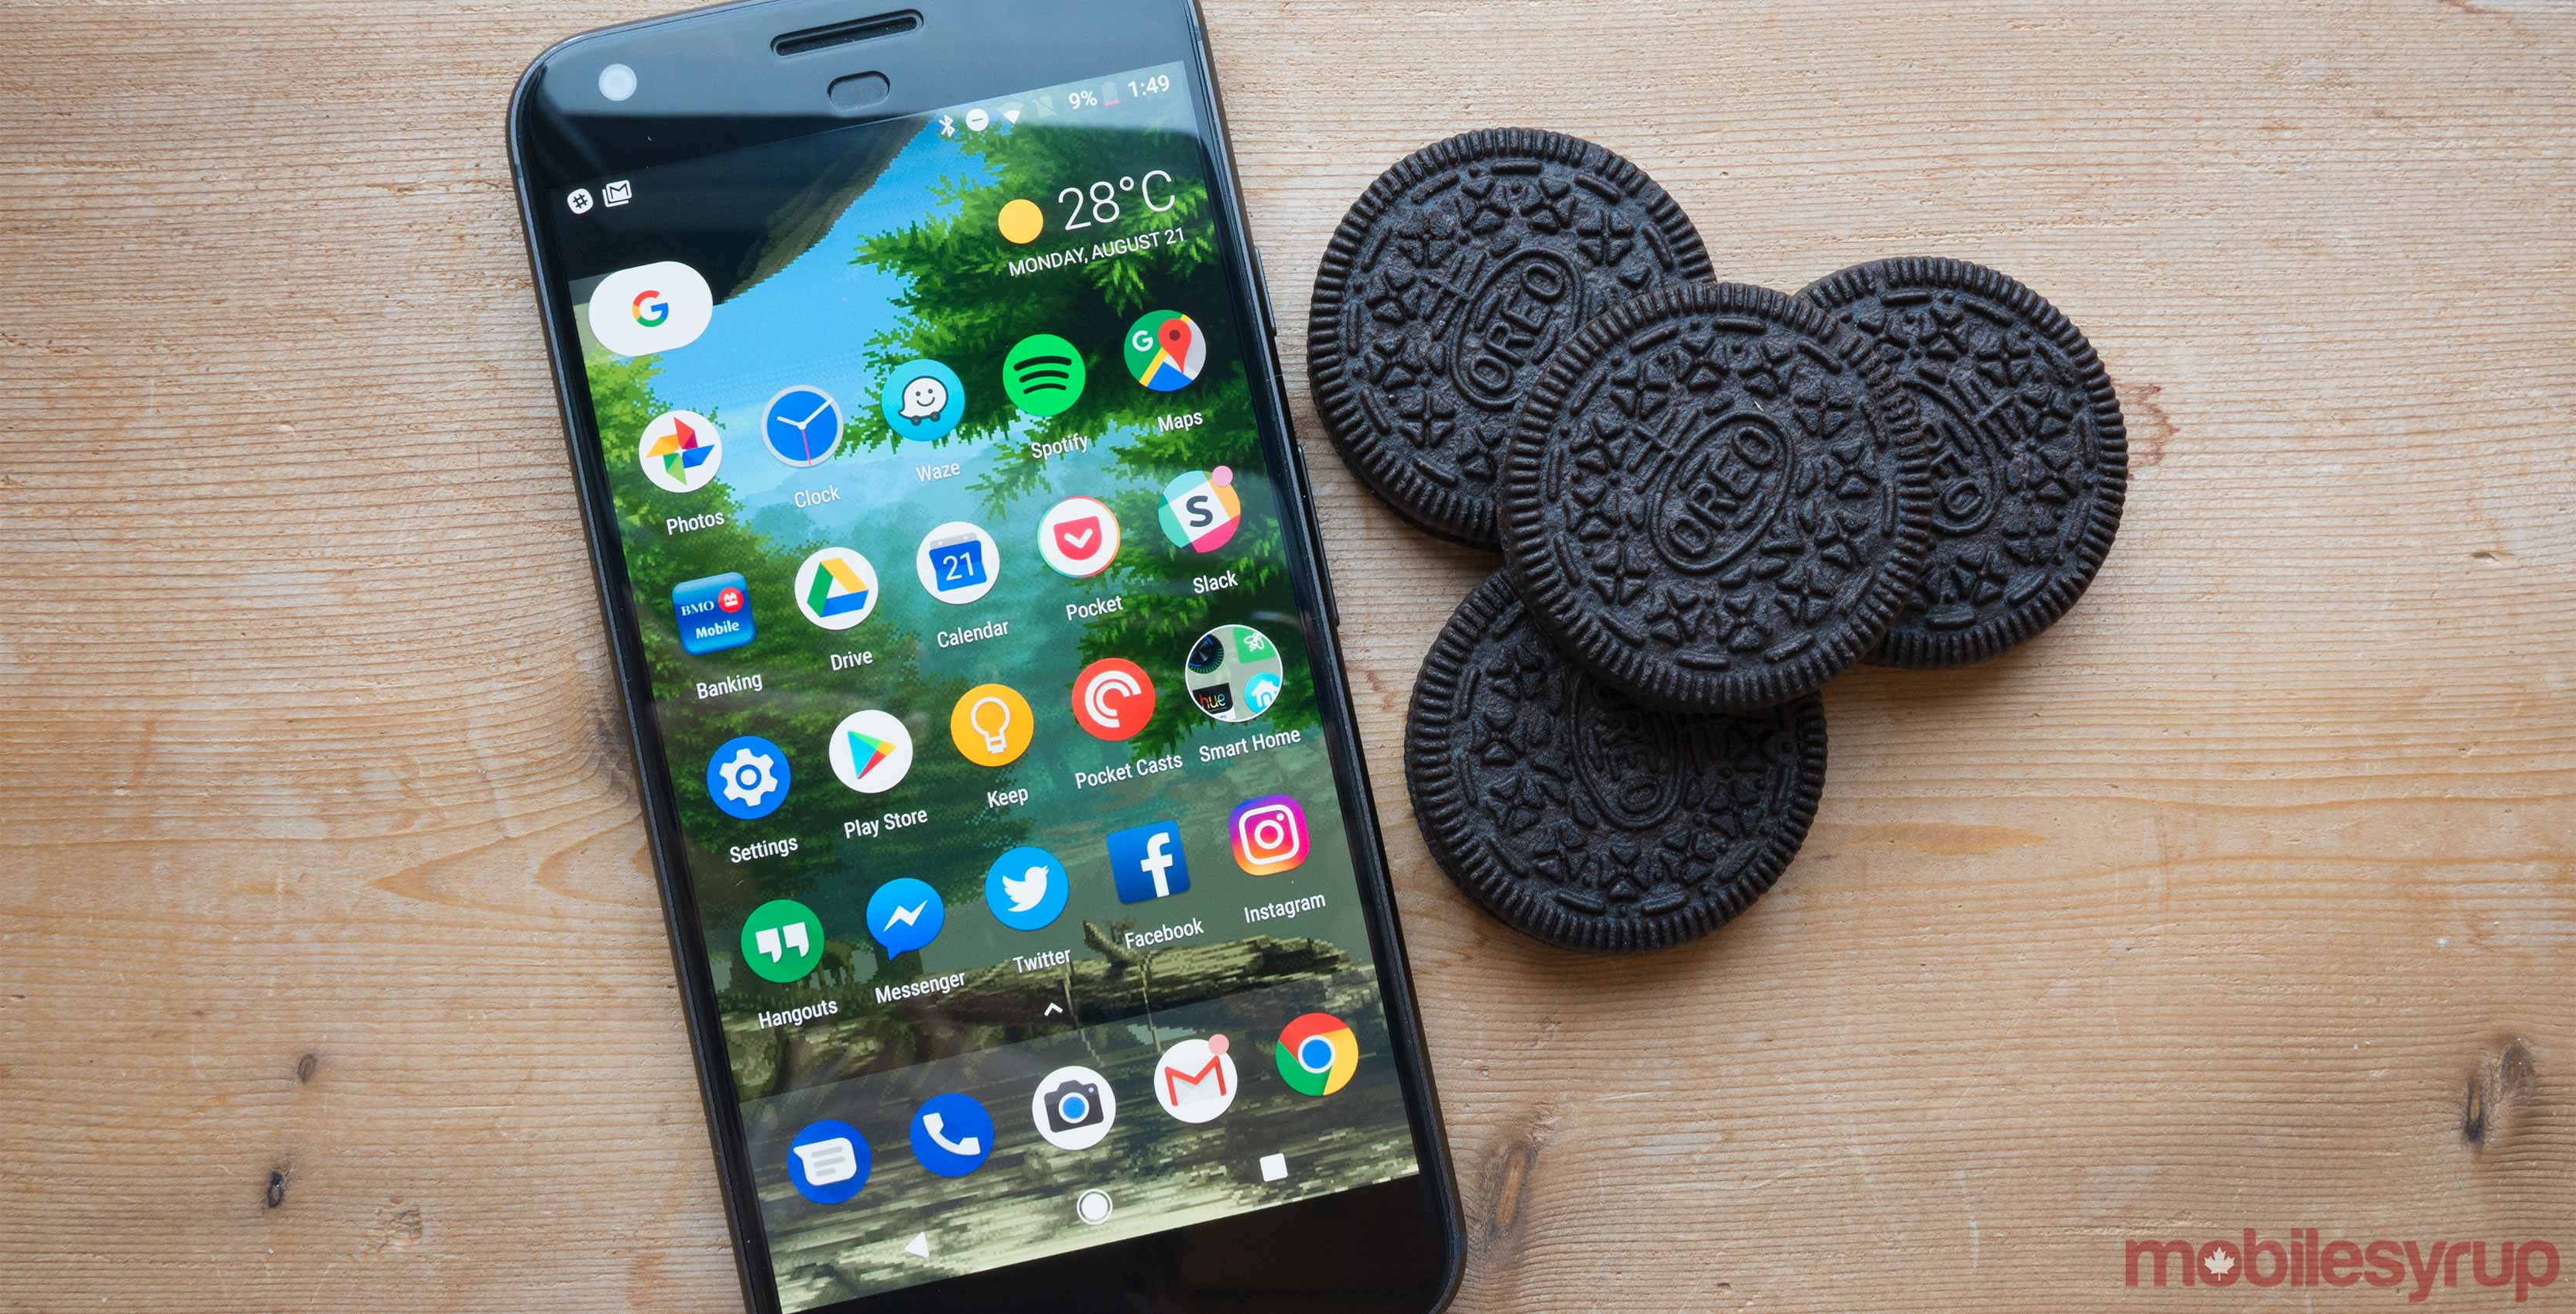 Android 8.0 Oreo is upon us, and it's heroic